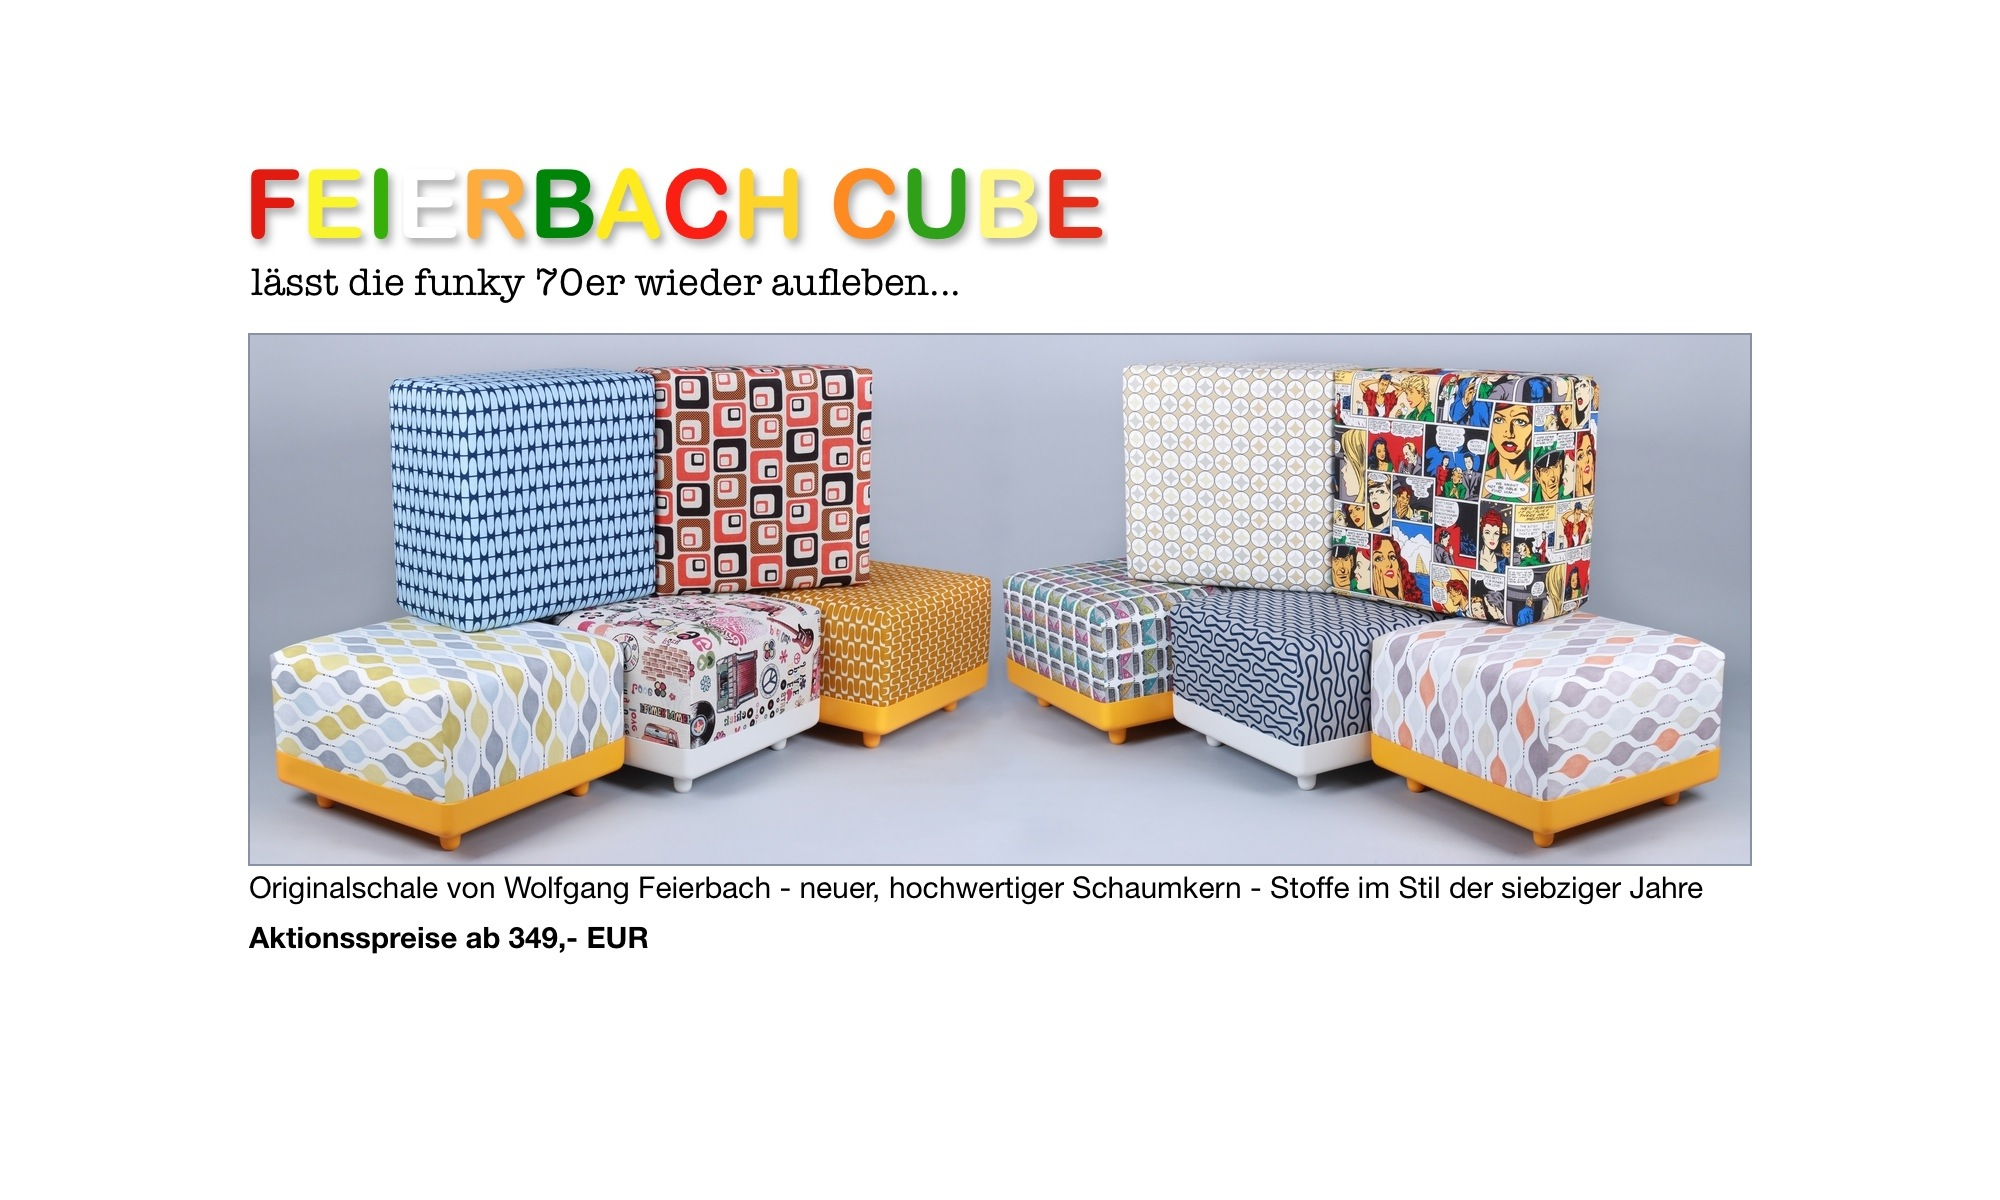 feierbach cube l sst die funky 70er wieder aufleben. Black Bedroom Furniture Sets. Home Design Ideas